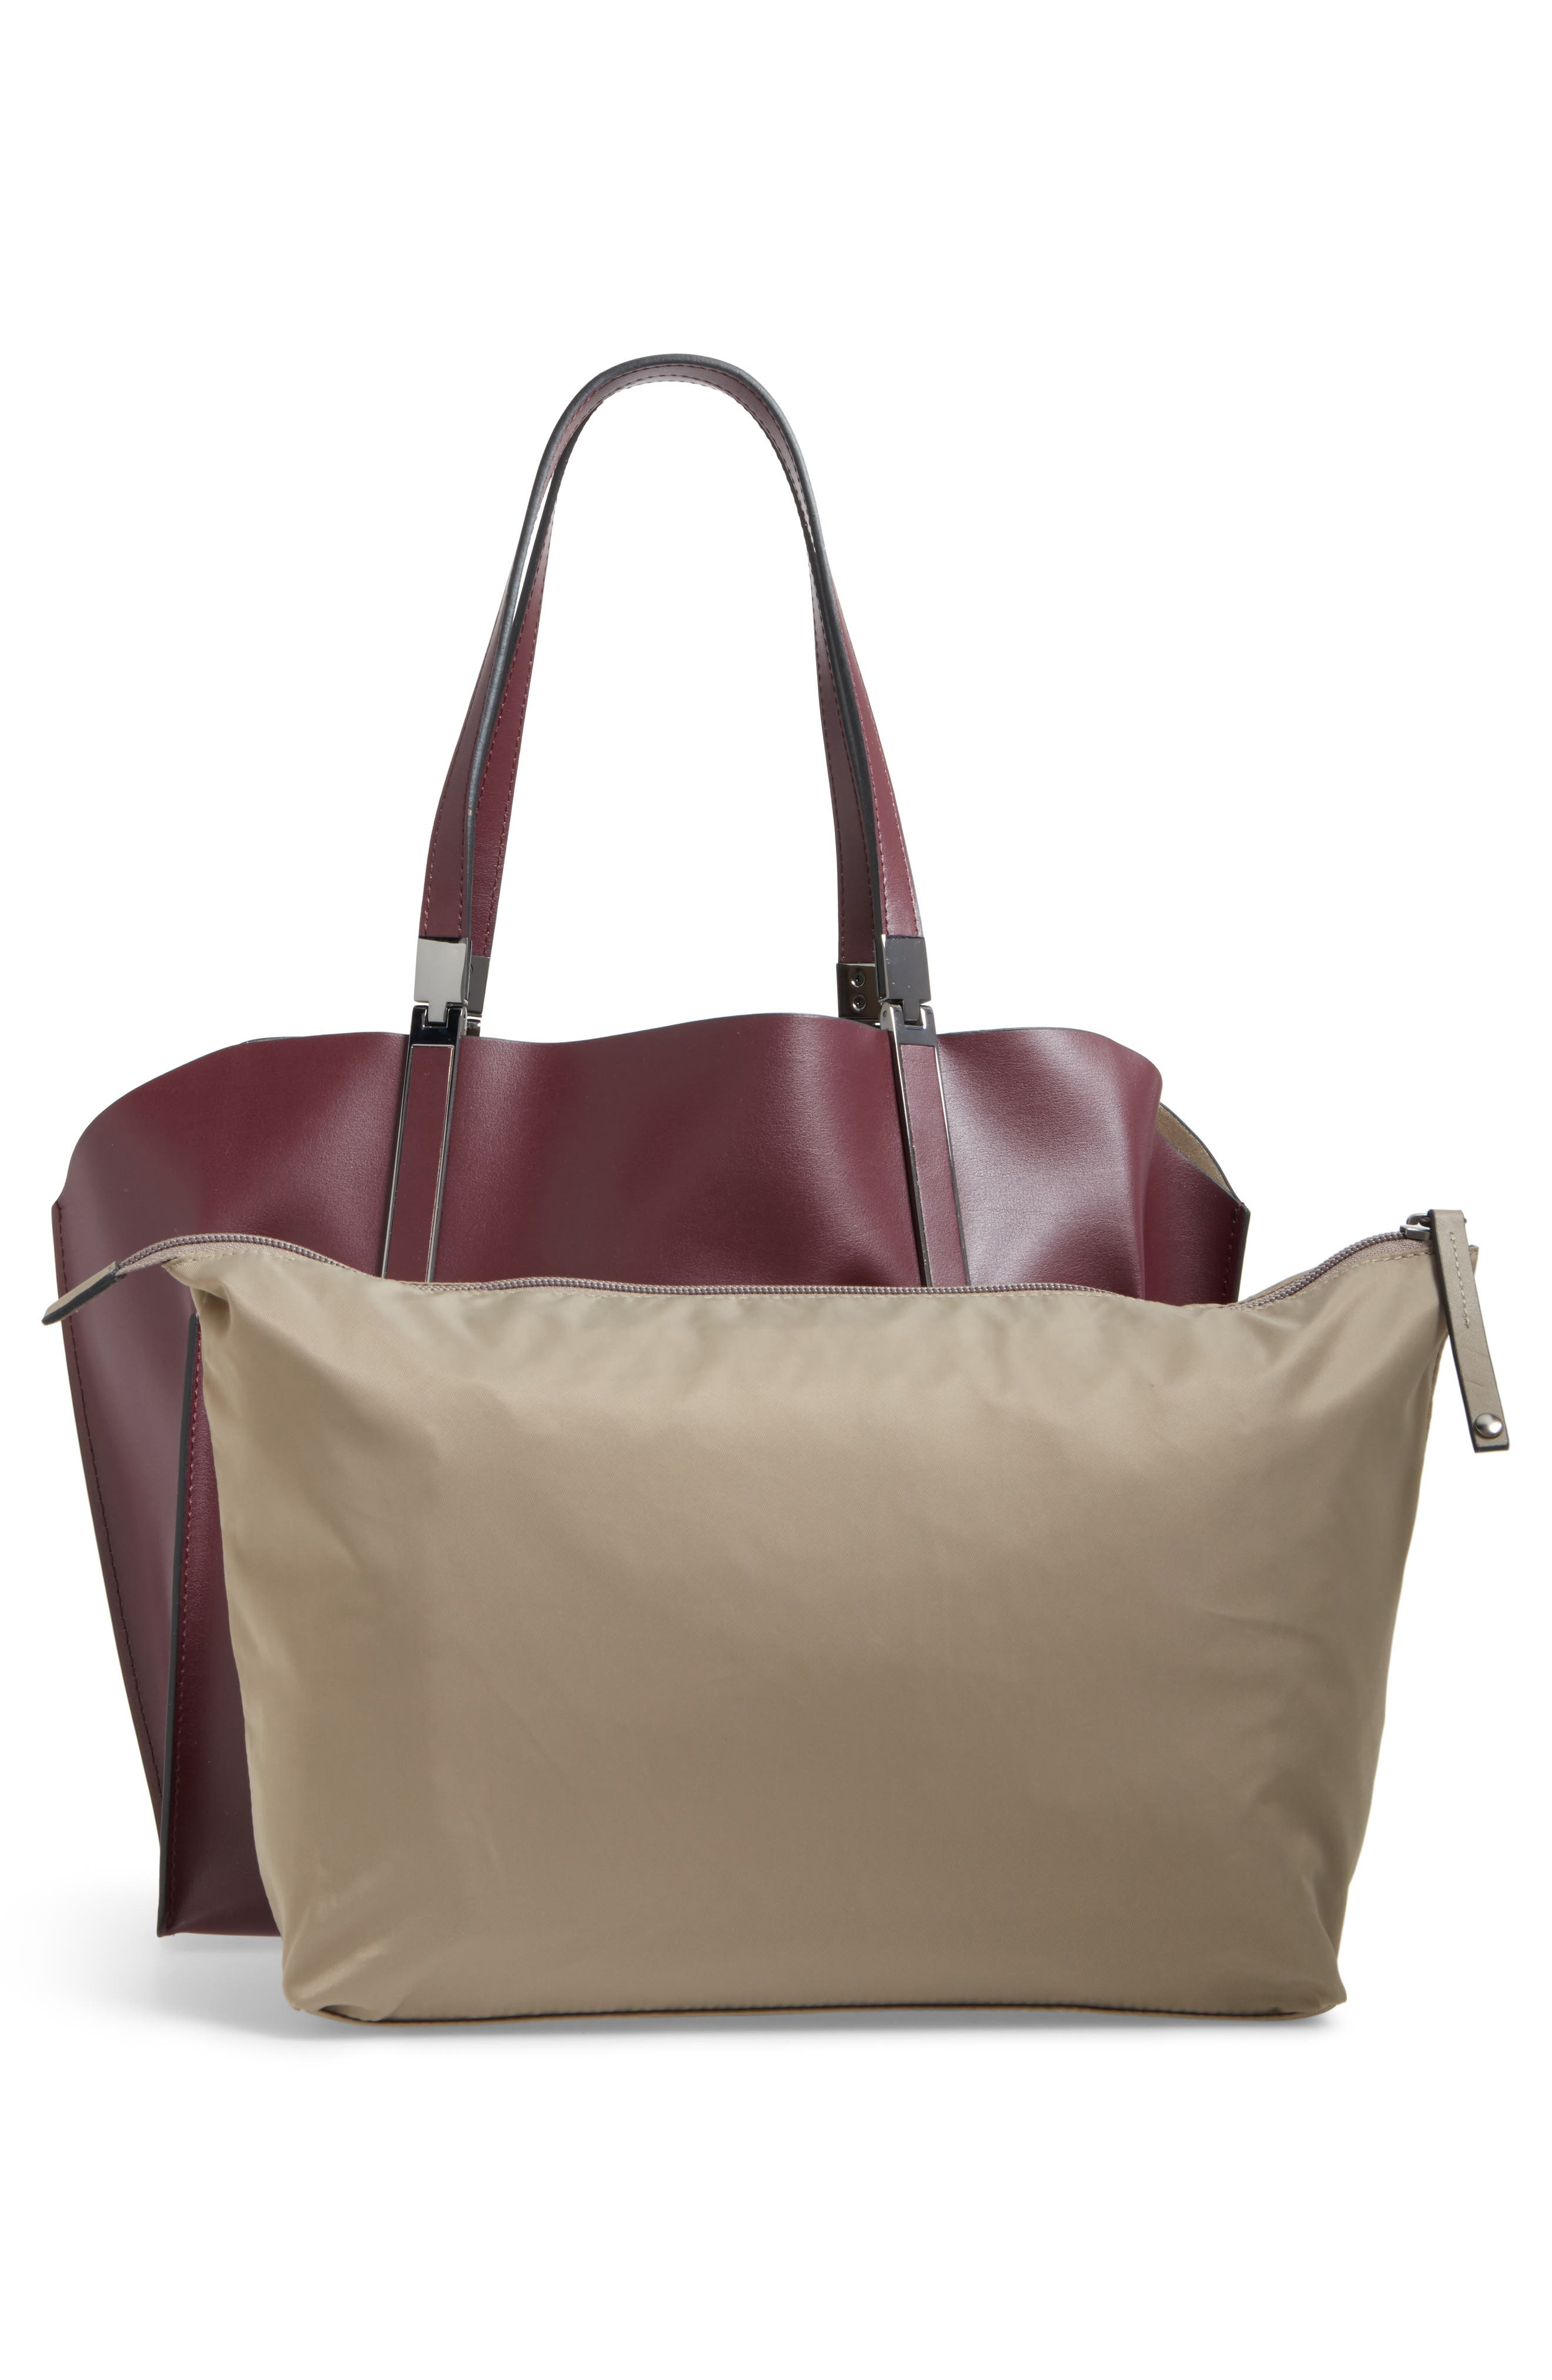 LODIS Silicon Valley Collection Under Lock & Key - Anita RFID East/West Leather Satchel,                             Alternate thumbnail 3, color,                             Chianti/ Taupe